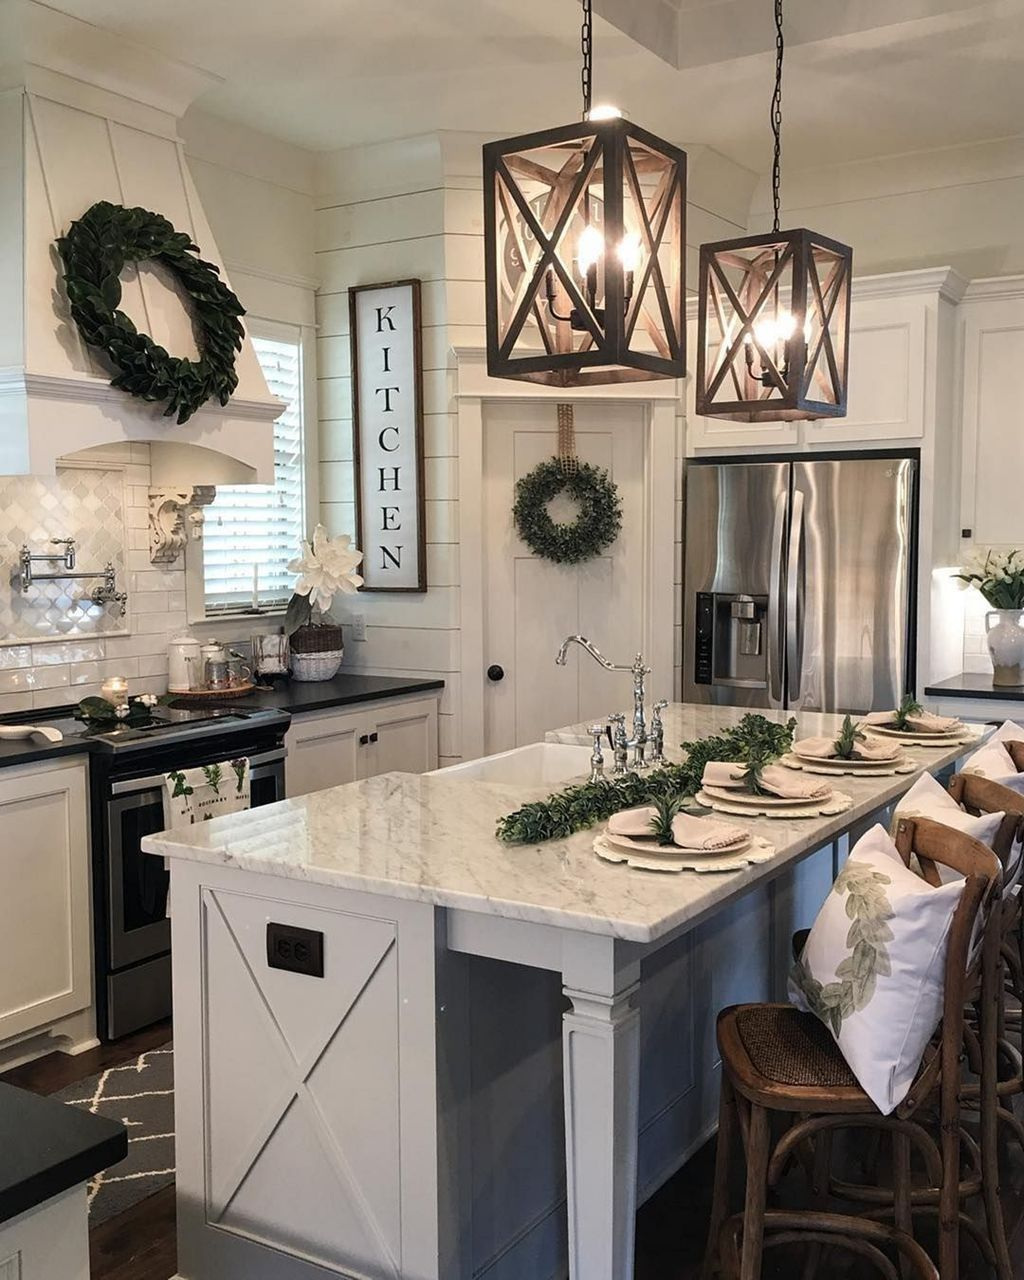 20+ Rustic Farmhouse Kitchen Ideas To Get Traditional ...